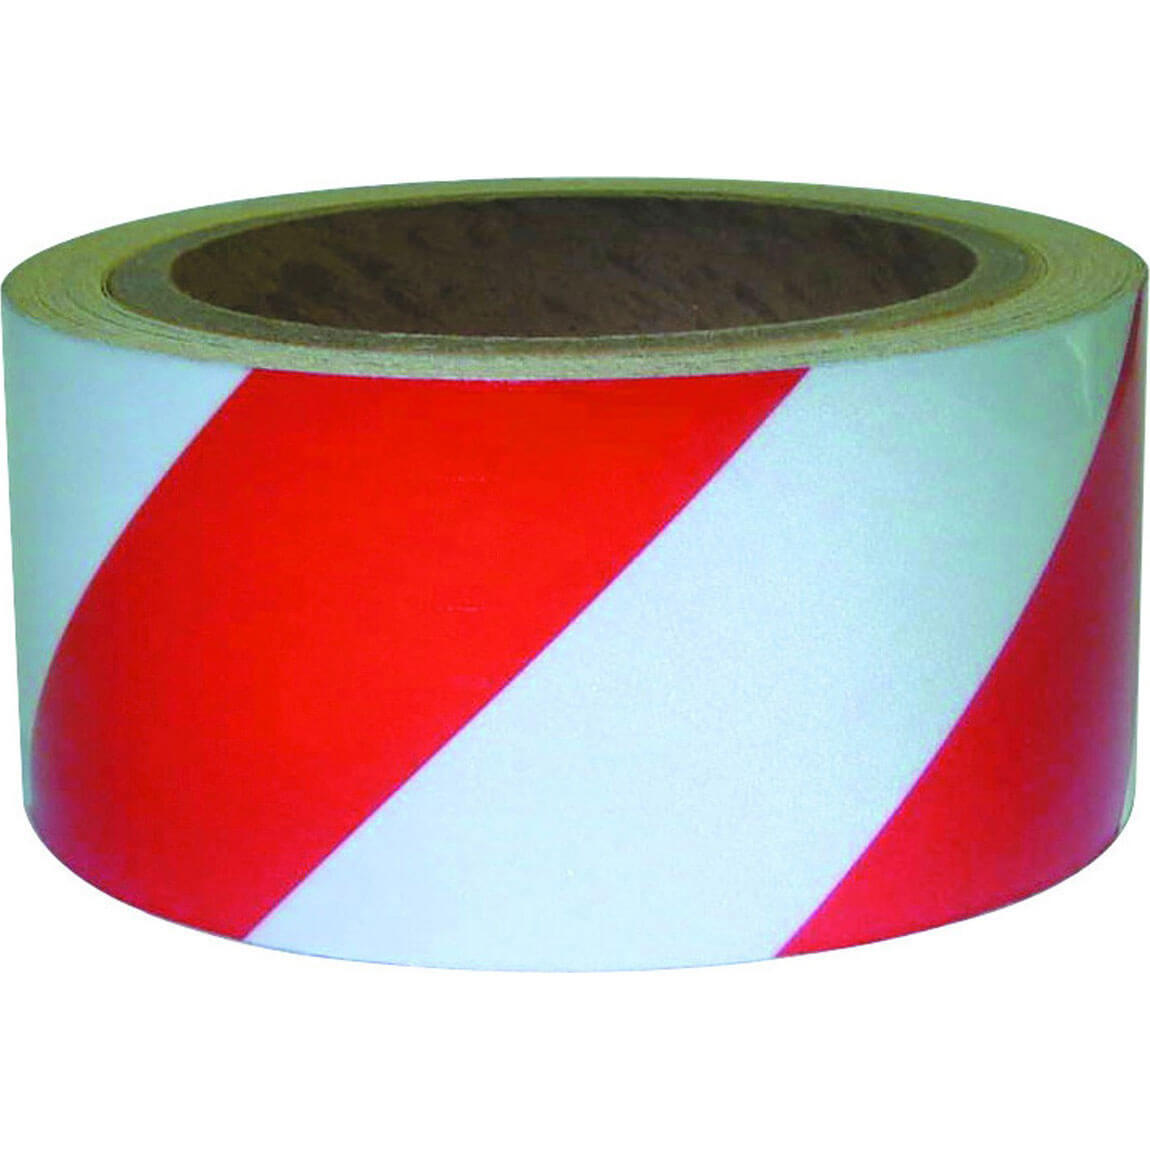 Image of Sirius Adhesive Hazard Warning Tape Red / White 50mm 33m